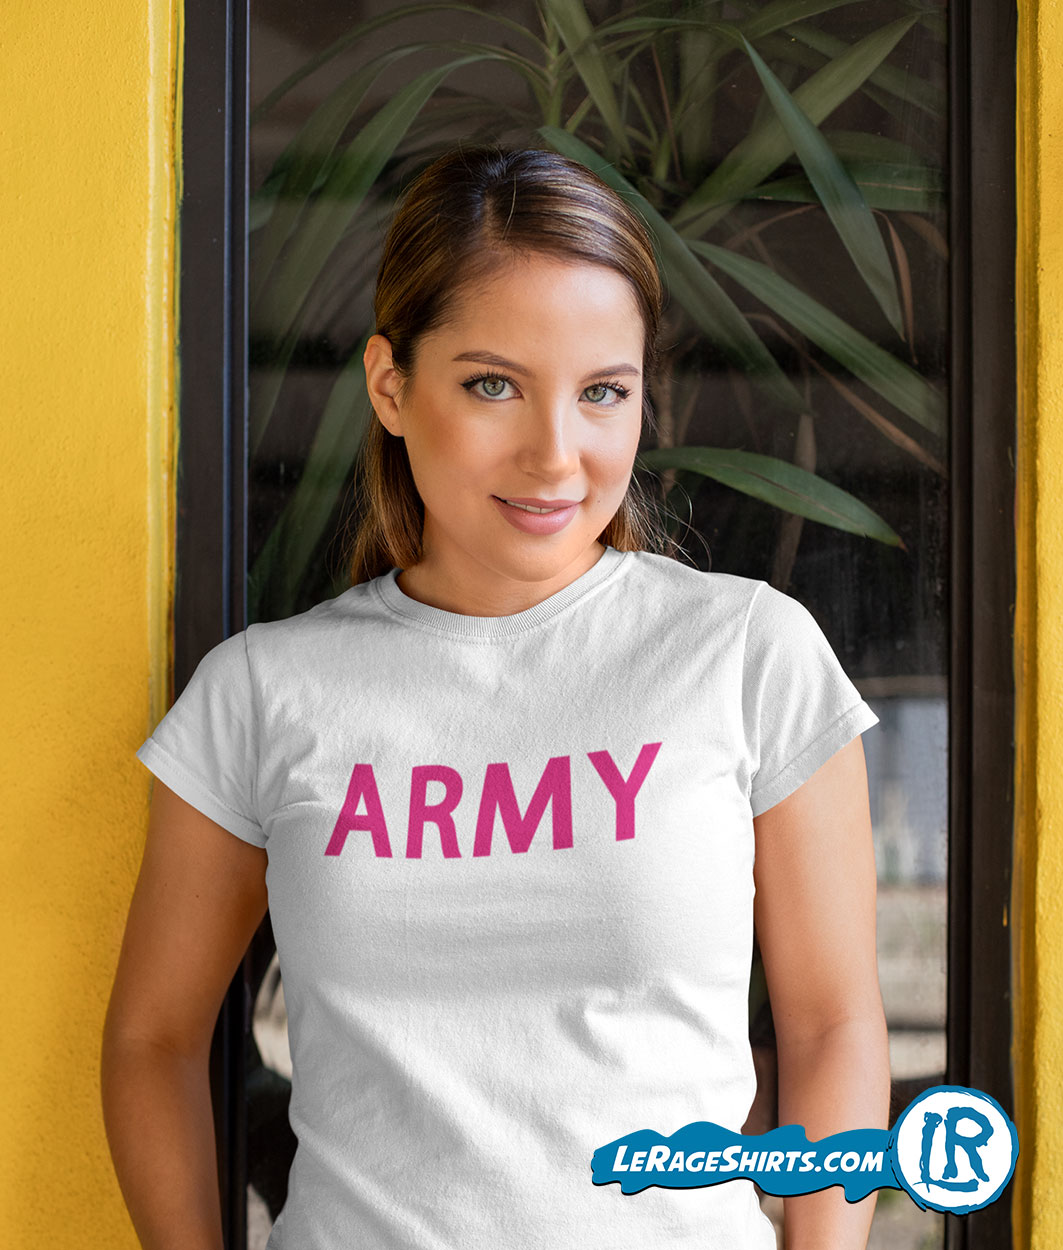 Army T Shirt White Color with Pink Letters